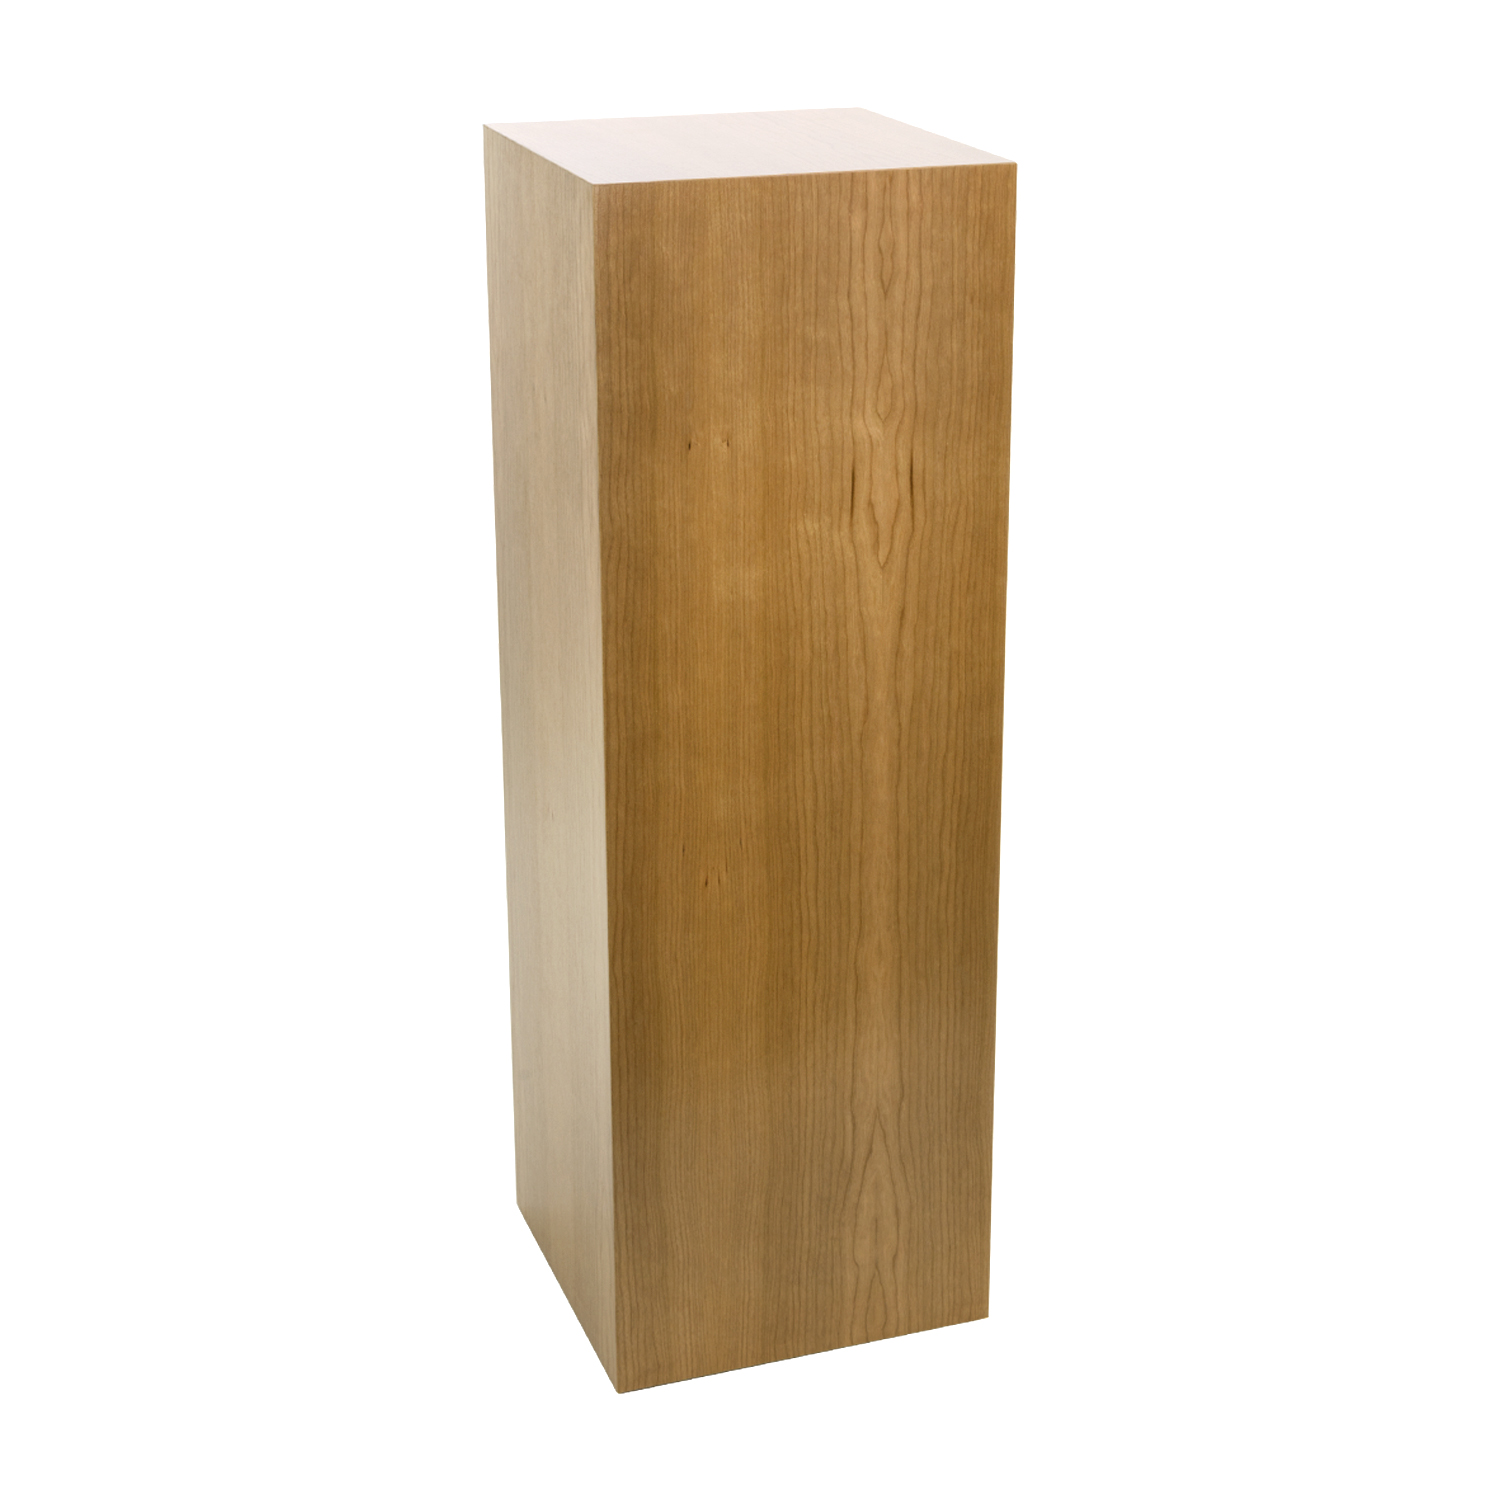 Cherry Wood Pedestal